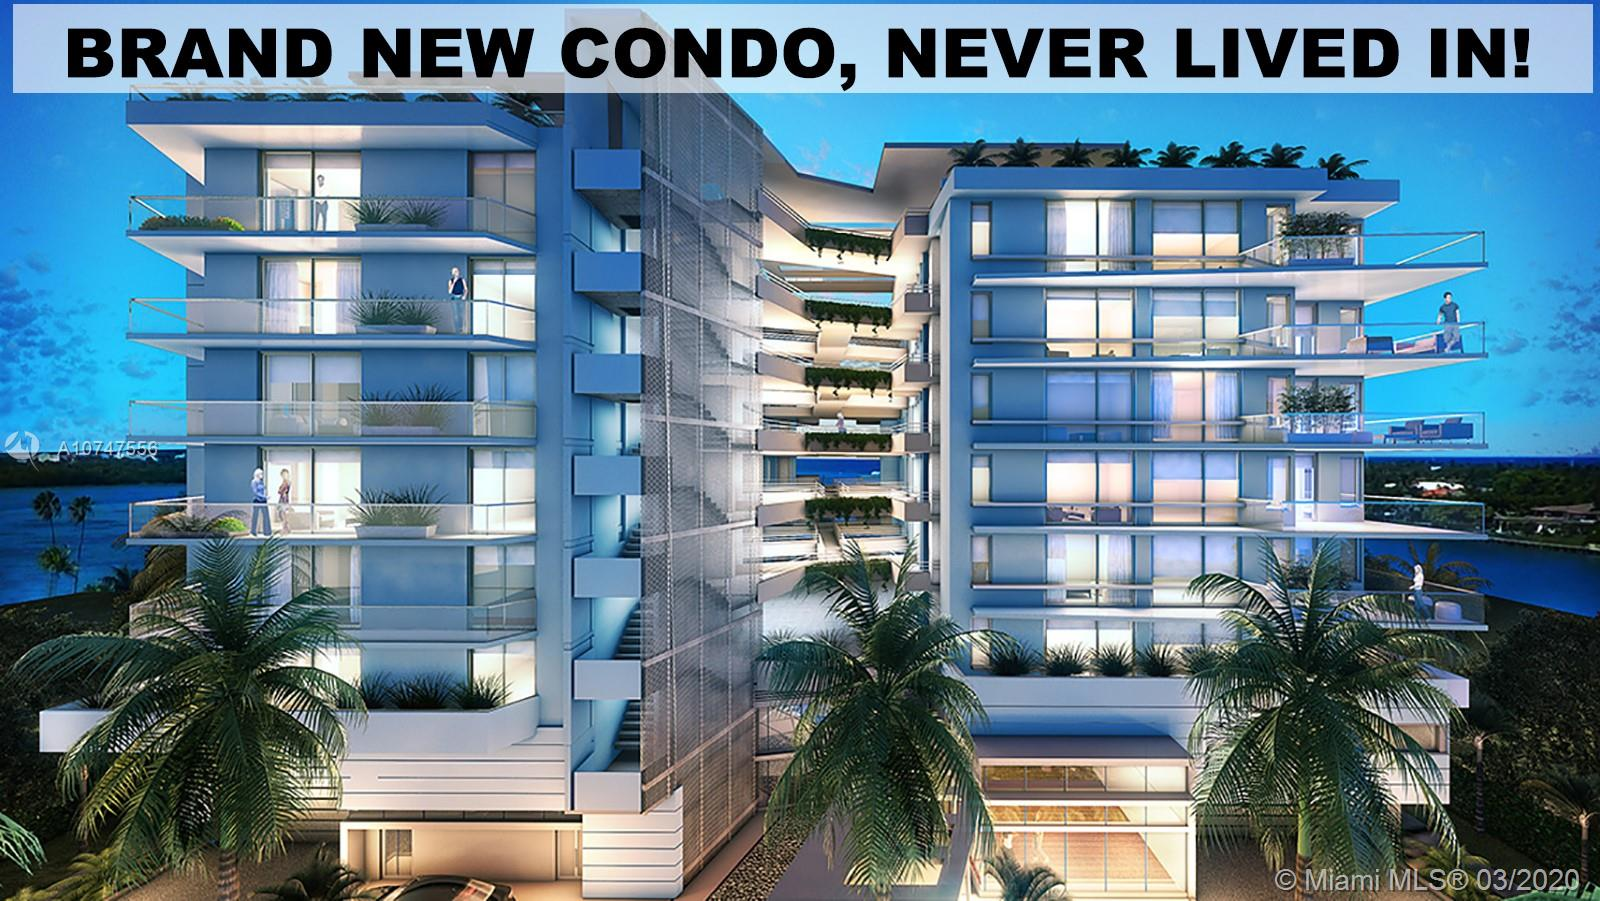 """BRAND NEW CONDO, NEVER LIVED IN!   Large 1 Bed + Den (can be 2nd bdr) & 2 Baths with partial water view. 2 covered parking spaces + 1 storage cage. Complete Kitchen with top of the line appliances including wine cooler and washer/dryer. The Palms Condo is a boutique waterfront building with a rooftop pool deck, hot tub, rooftop BBQ/entertainment area with amazing views. Located in Bay Harbor Islands, one of Miami's most desirable locations. Walk to """"A"""" rated Ruth K. school (K-8), just minutes to the world-famous Bal Harbour Shops and the sandy beaches of Bal Harbour and Surfside.  The island is perfect for families; playgrounds throughout the island, tennis courts, bicycle paths, citibike rental adjacent to bldg. A one of a kind property in a one of a kind neighborhood."""